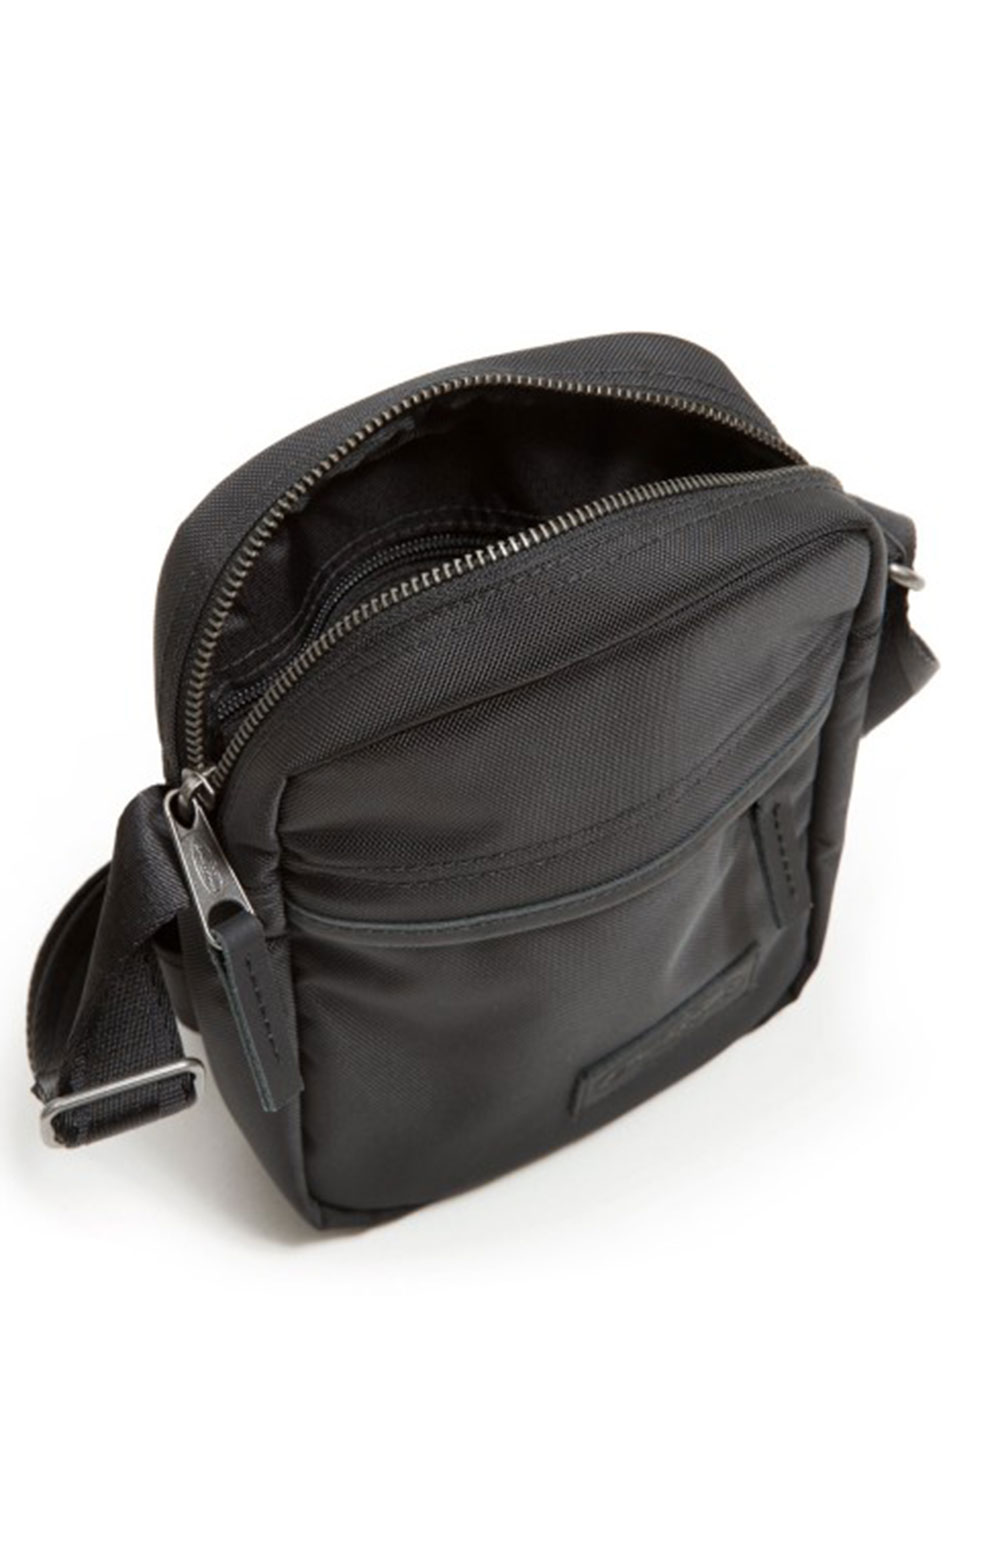 The One Bag - Constructed Black 3